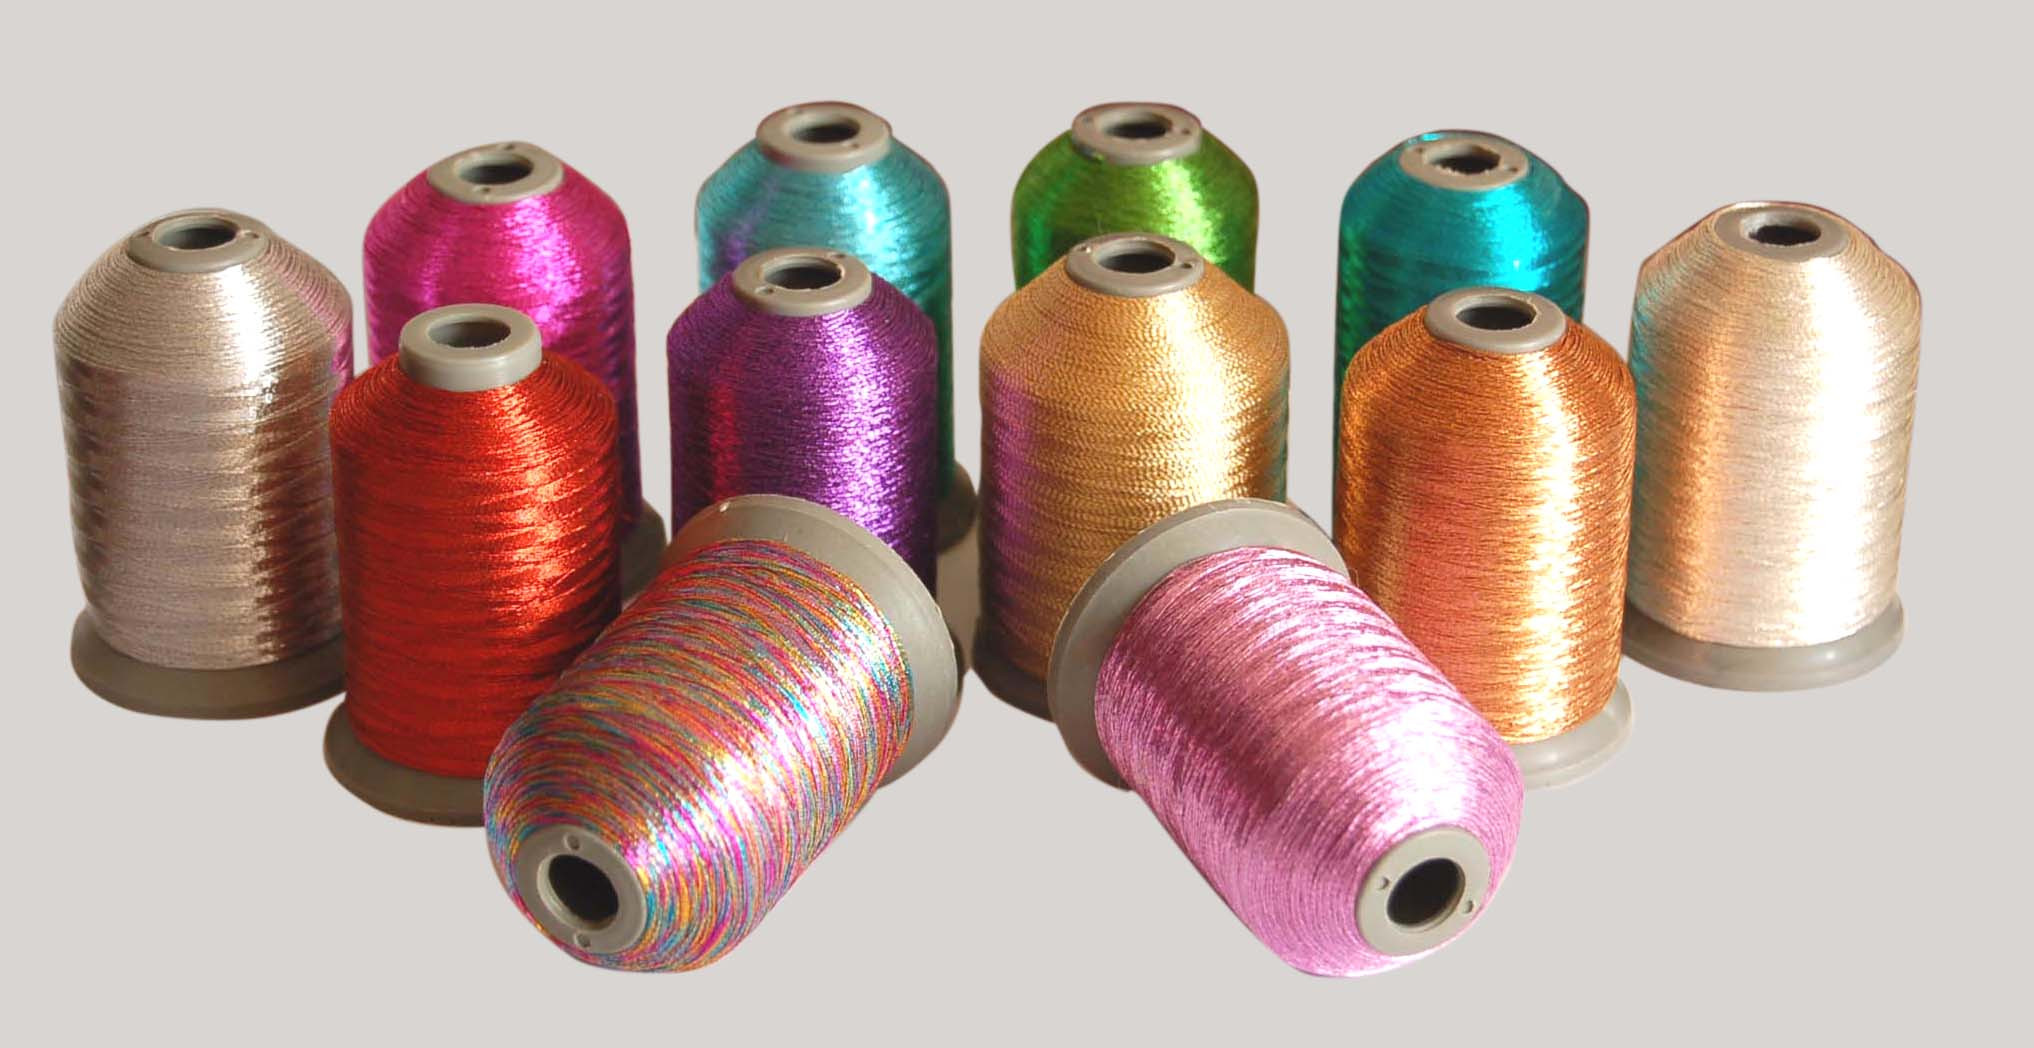 Yarn with Metallic Thread Fresh Quilting with Metallic Thread Of Lovely 44 Pics Yarn with Metallic Thread